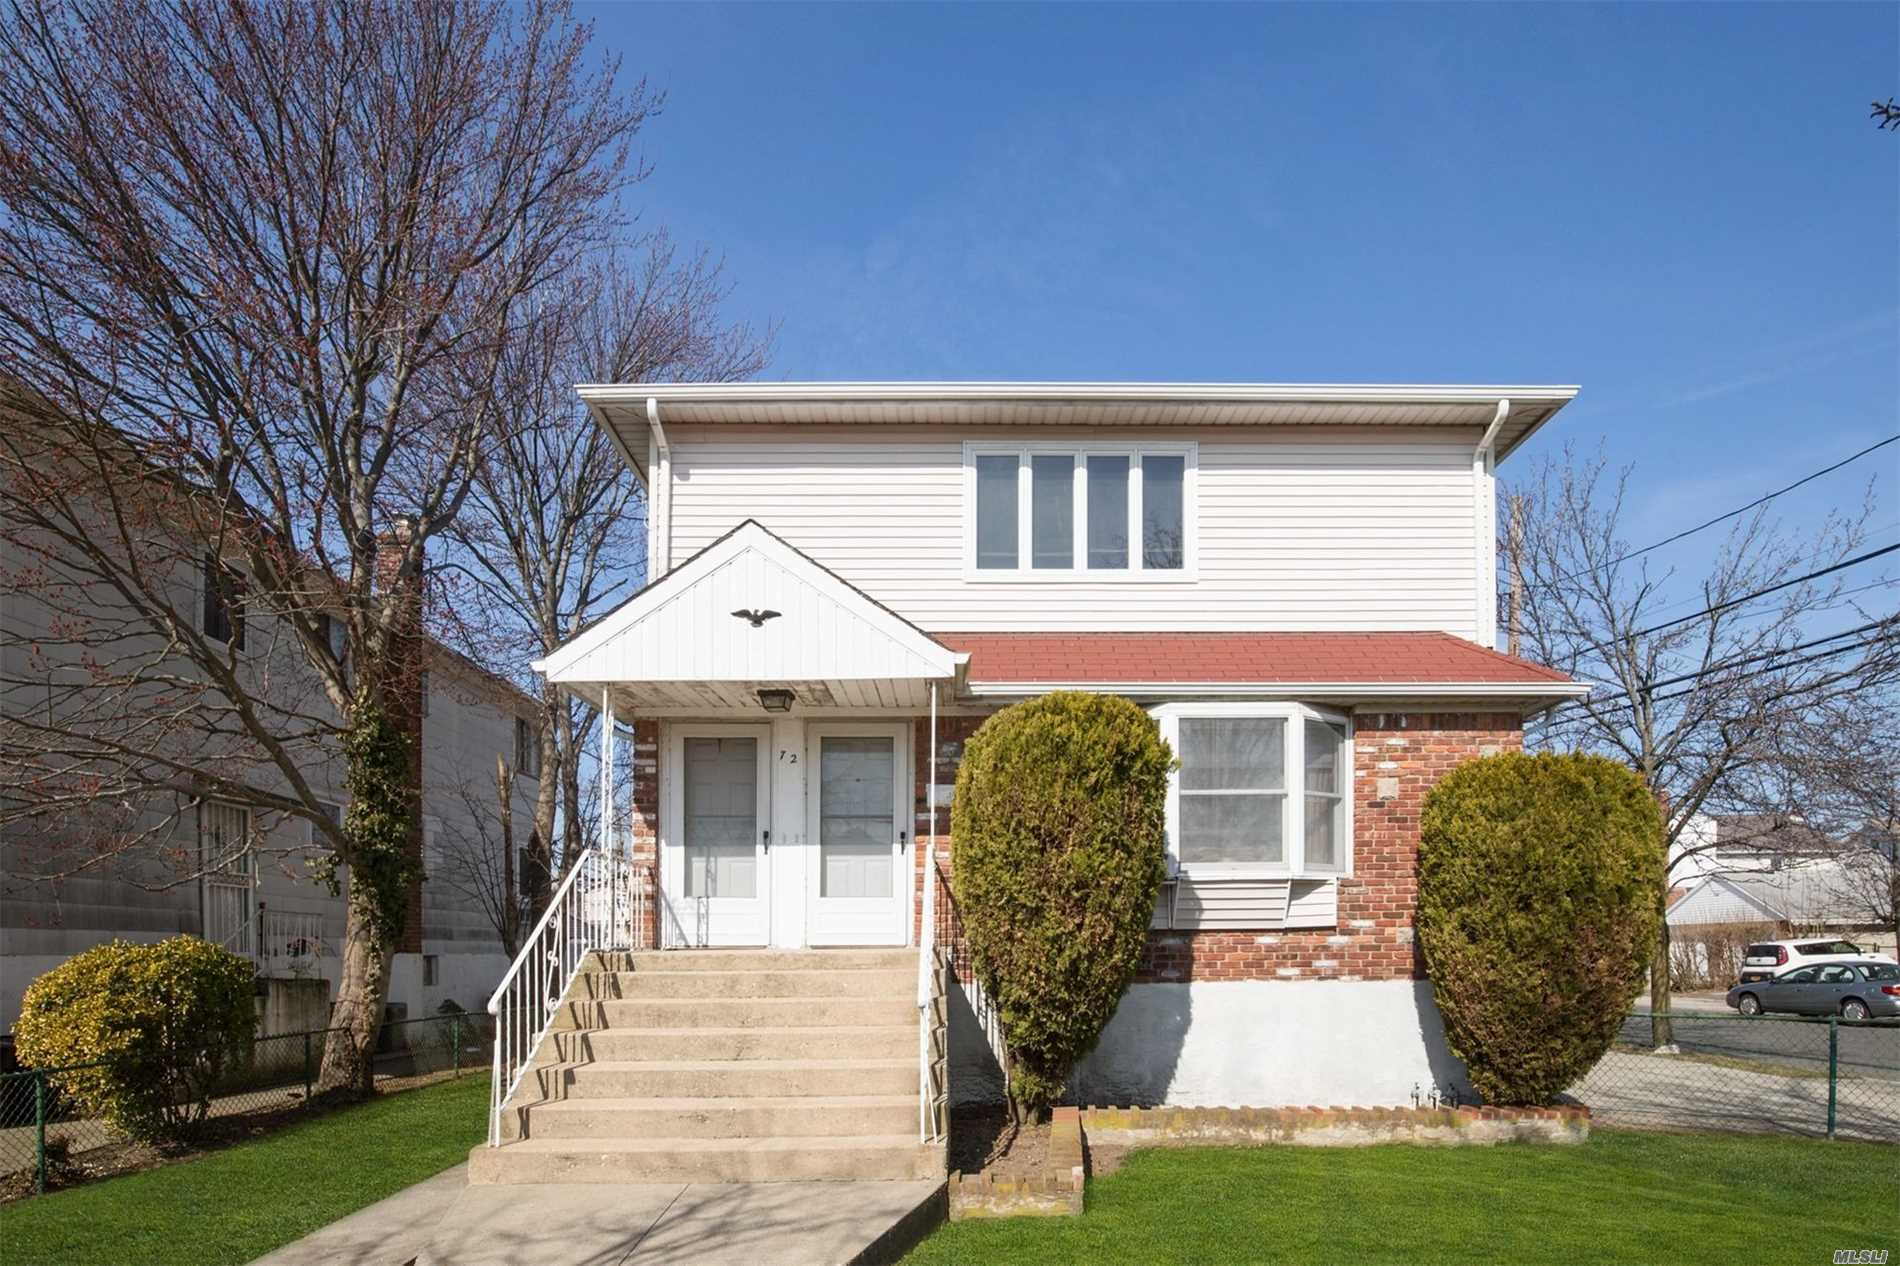 Don't Miss the chance to own this 5 Br/2 Full Bath Spotless and Spacious Legal 2-duplex in beautiful East Rockaway! This beauty boasts: 3 bedrooms on the main level w/EIK & Lr/Dr and 2 bedrooms on the 2nd floor w/EIK, Lr/Dr.hardwood floors thru-out. Full unfin basement with high ceilings and sep ent. /private driveway and fenced in backyard. Gas heating. Close to schools transportation, and beautiful Bay Park! Great home for all or for investment. This one won't last!